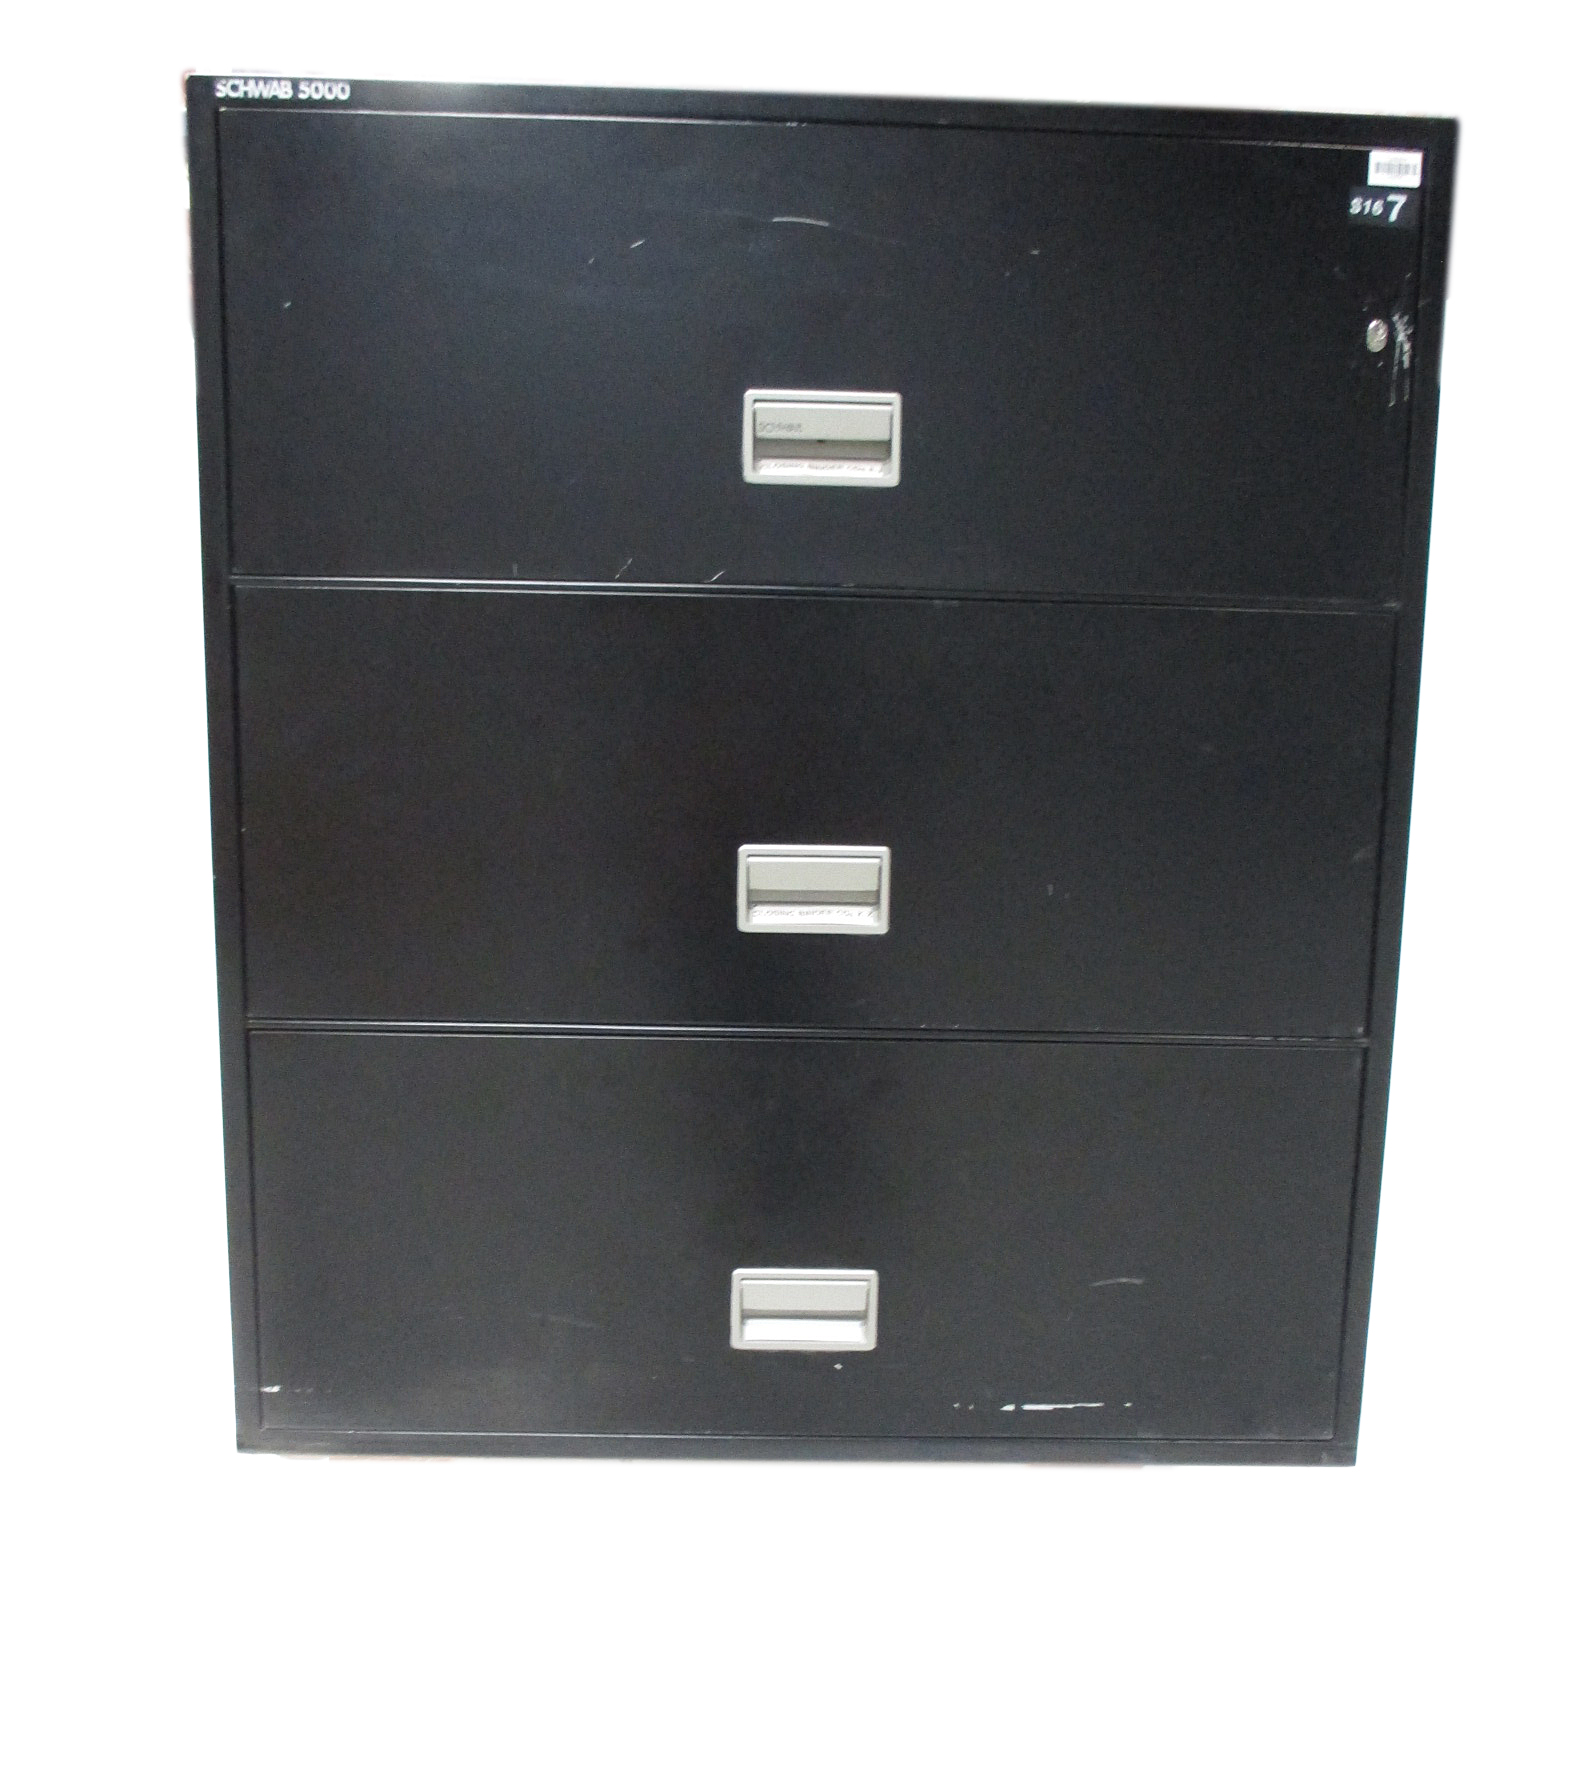 3 Drawer 36 Fireproof Lateral File Black By Schwab 5000